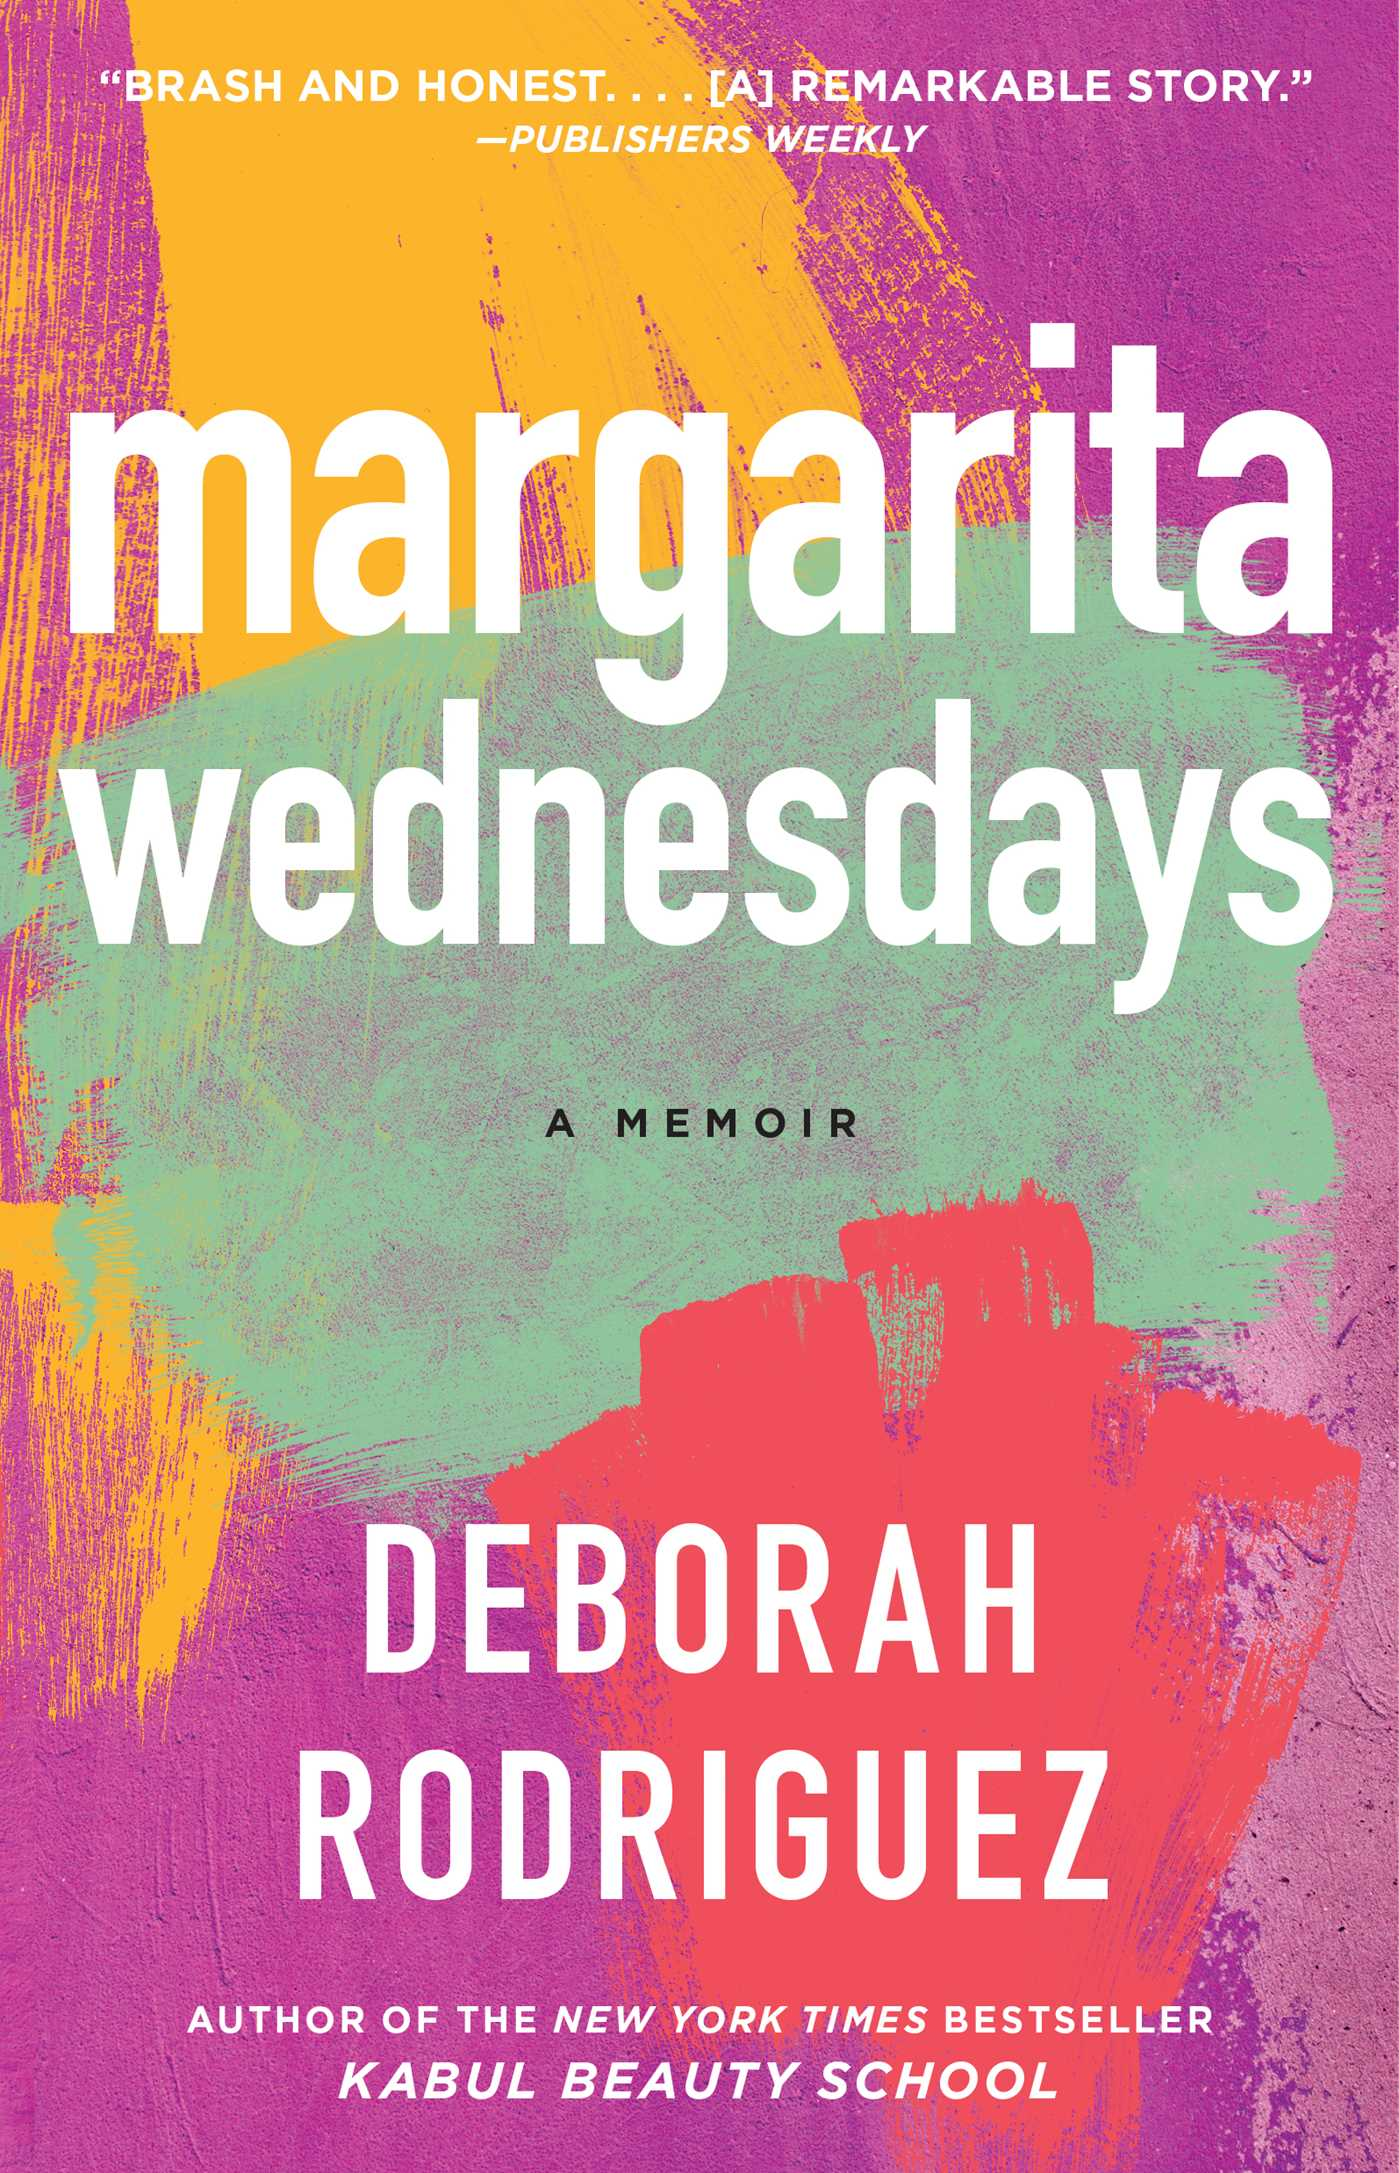 Margarita-wednesdays-9781476710679_hr